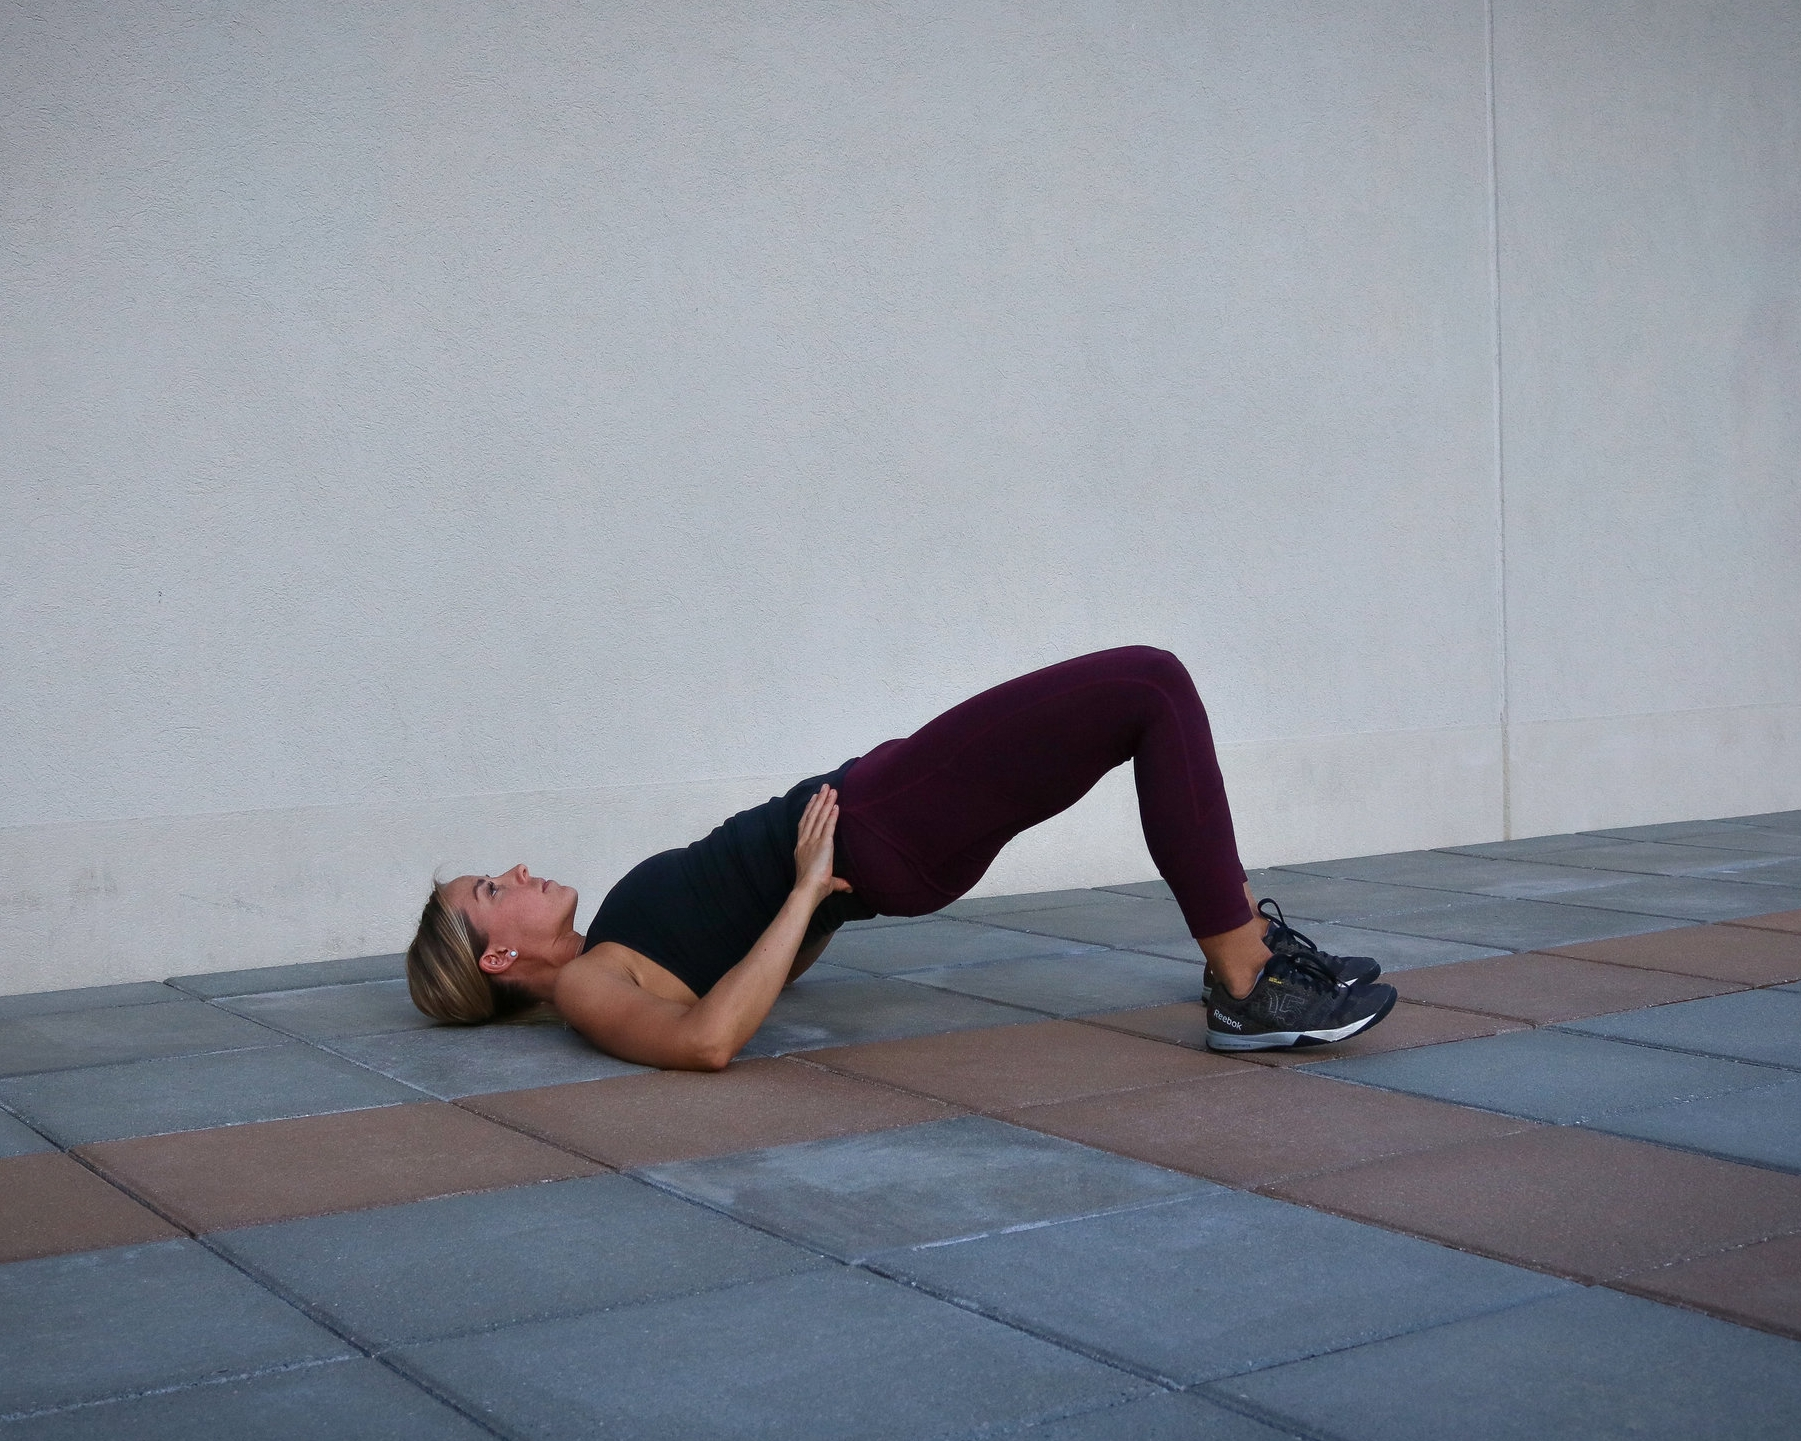 Top of the movement - notice that neutral spine and engaged core to prevent arching